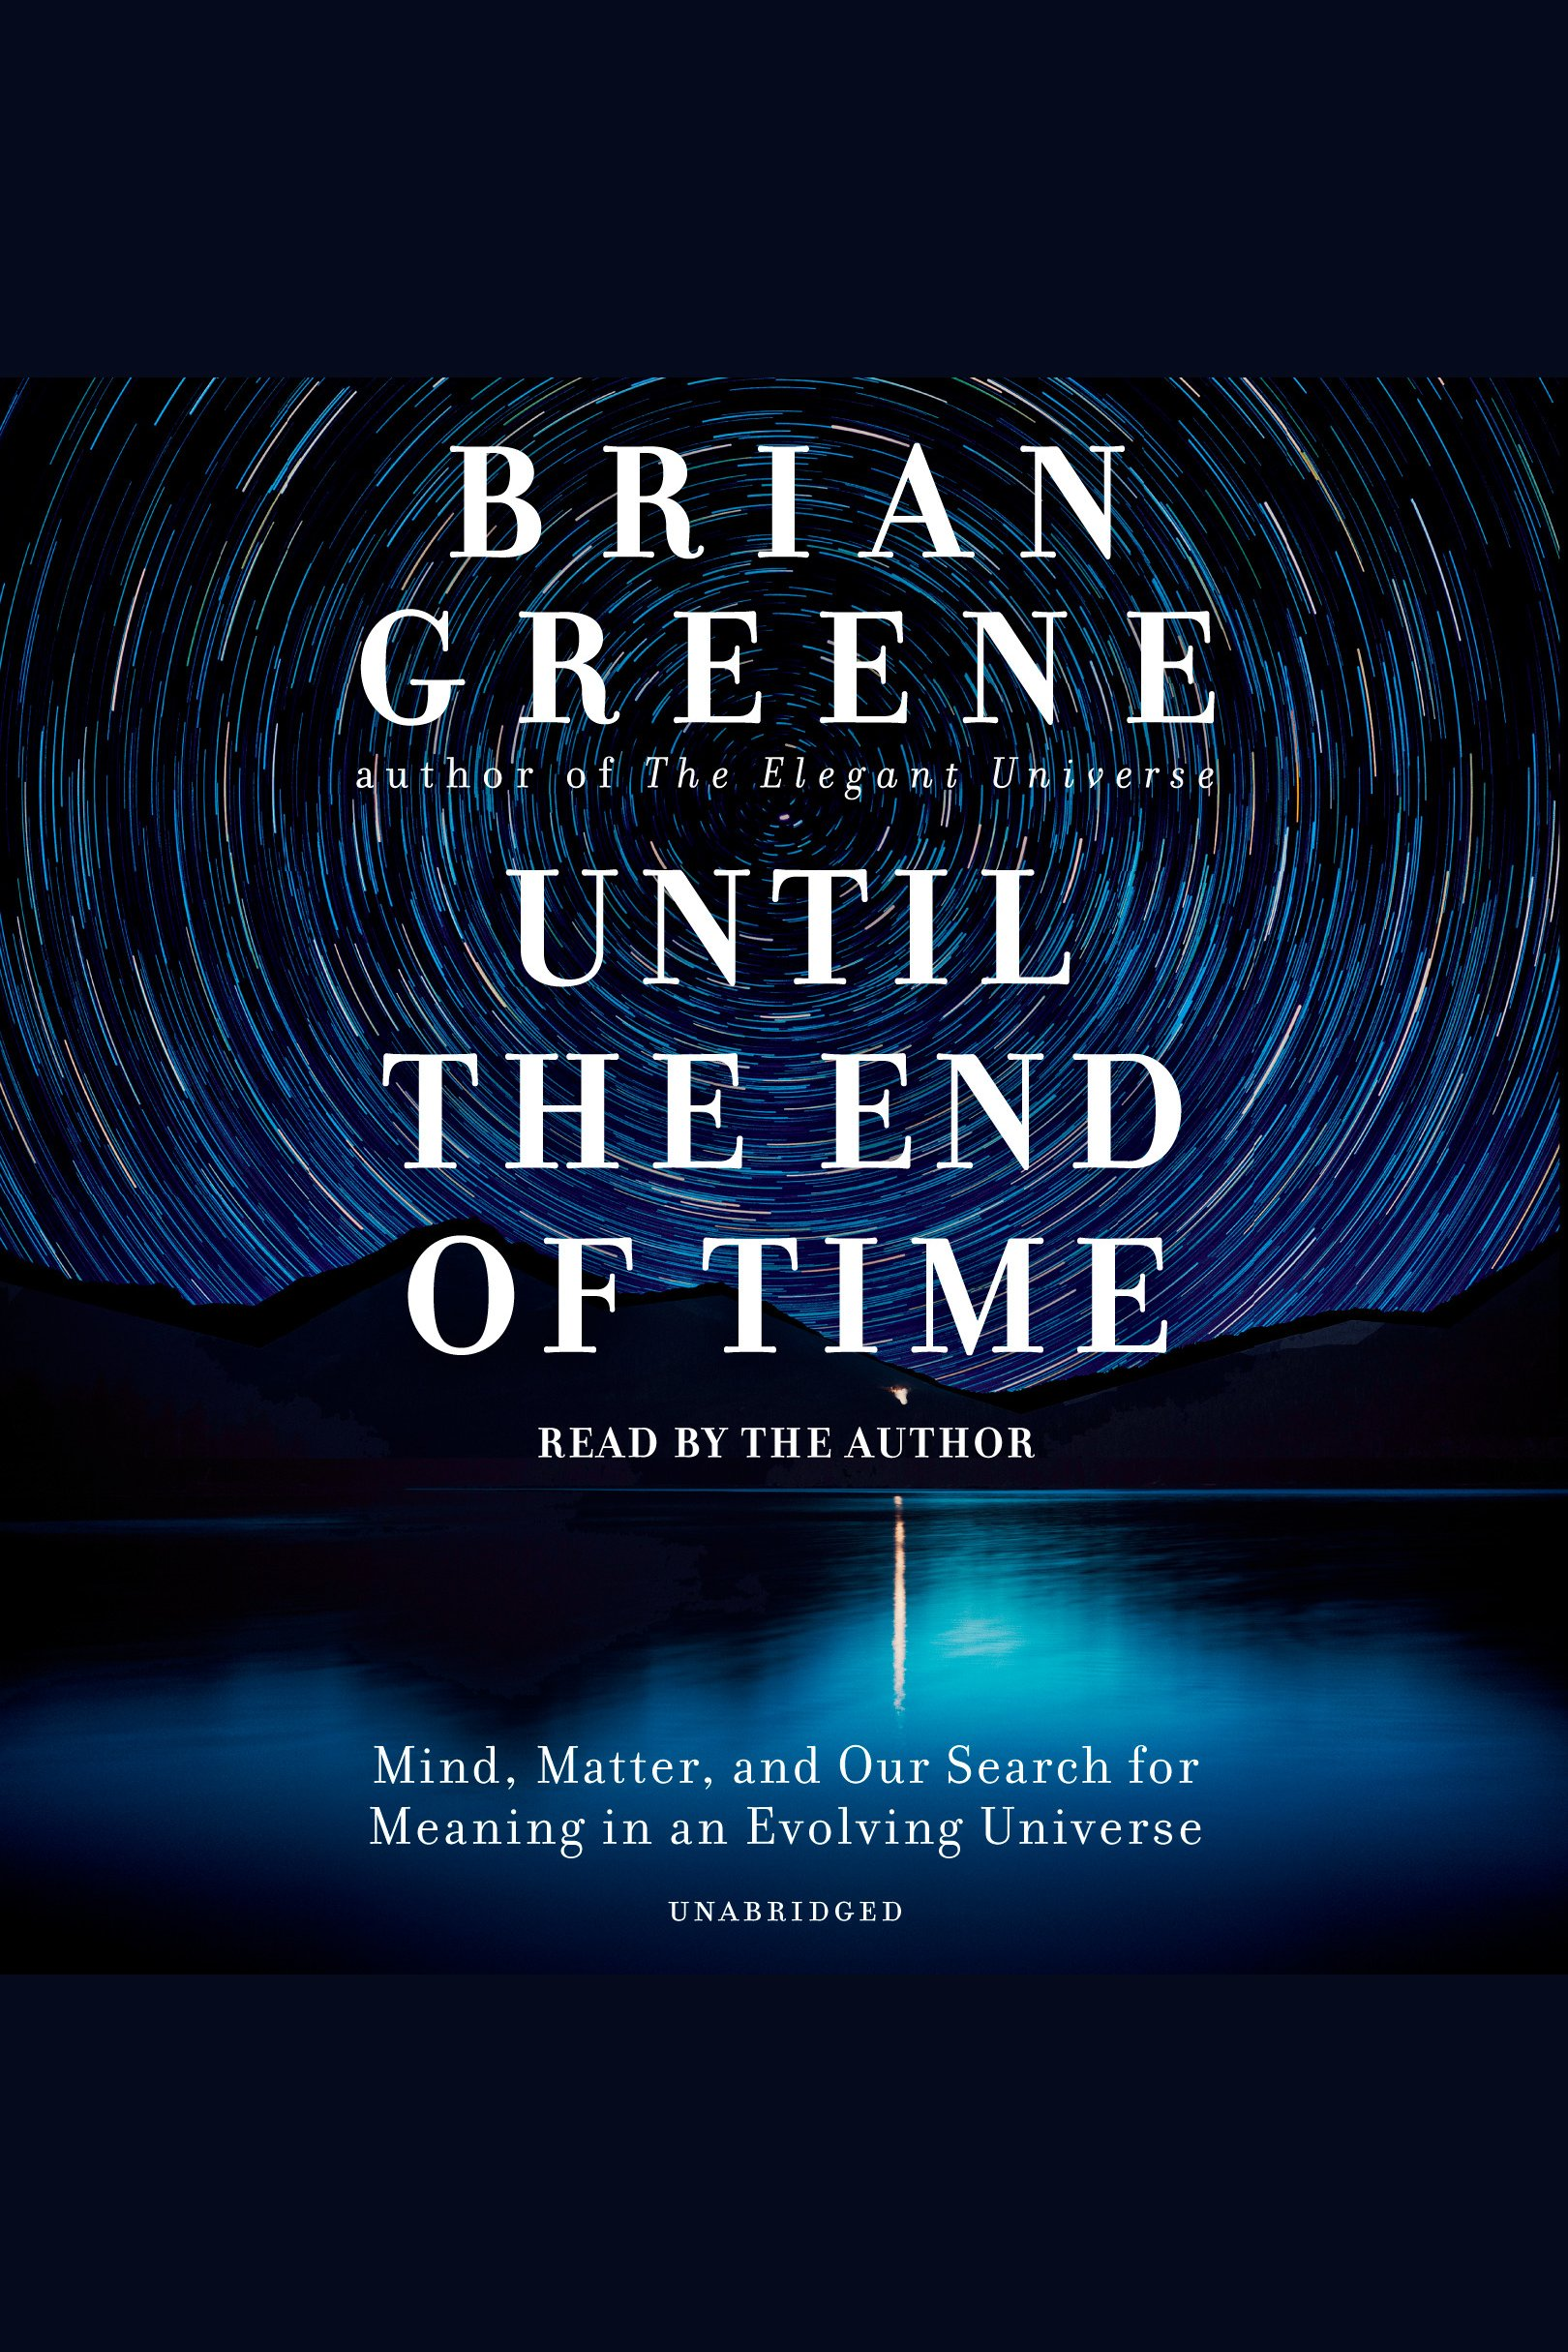 Until the end of time mind, matter, and our search for meaning in an evolving universe cover image